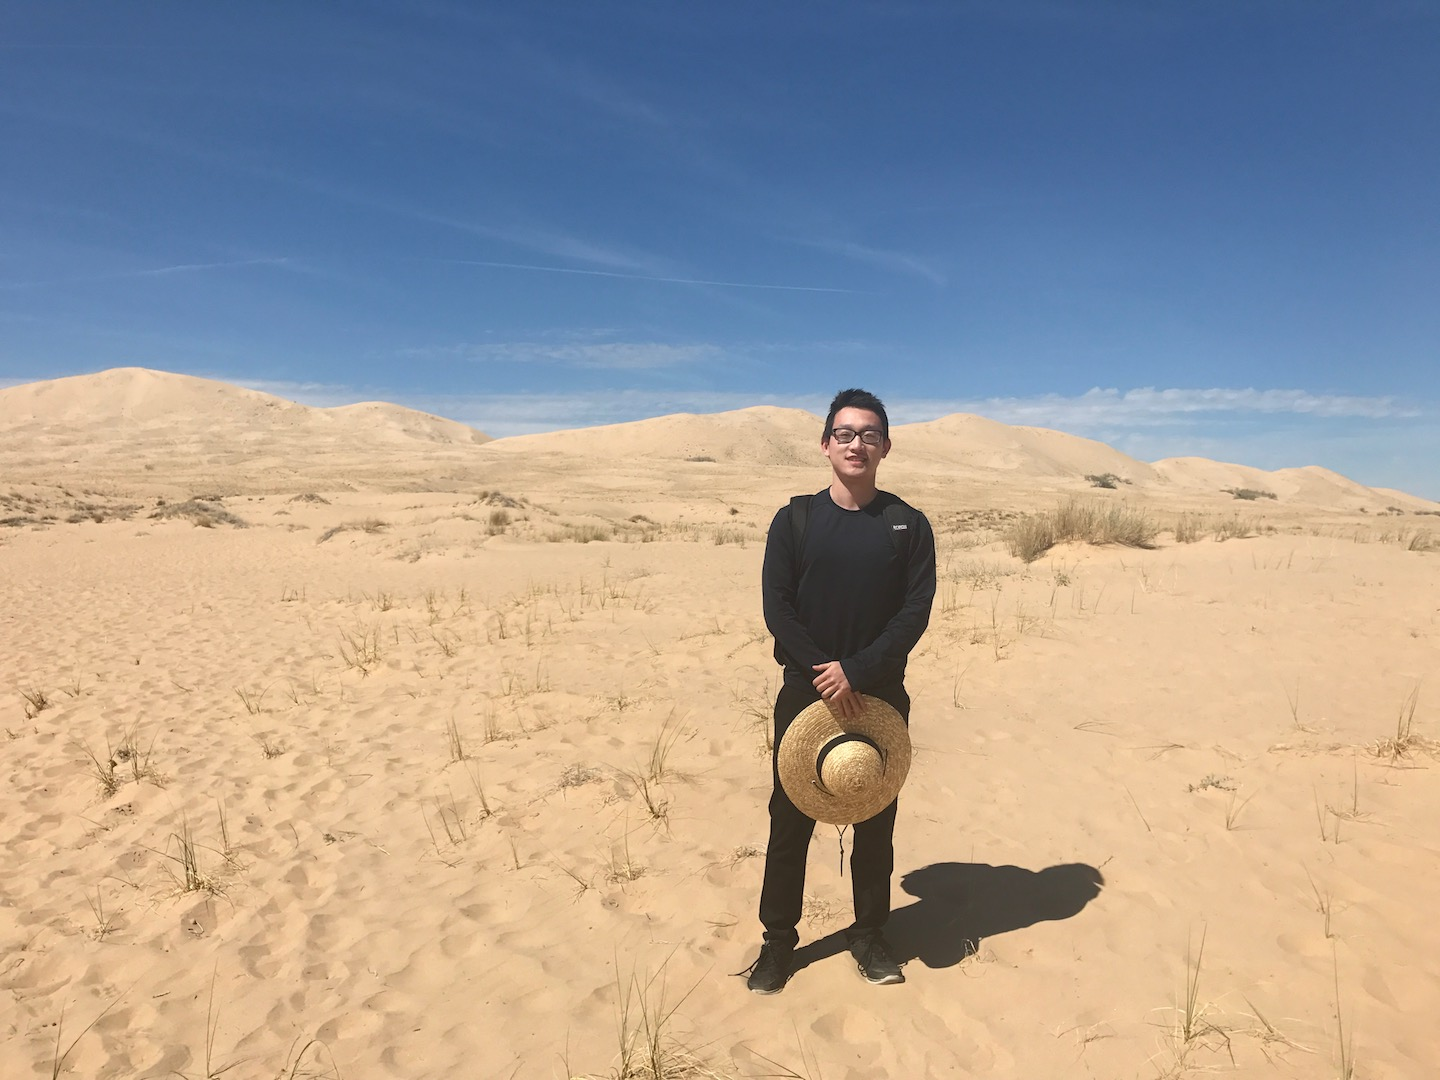 The face of someone who does not yet realize how much he's underestimated these sand dunes